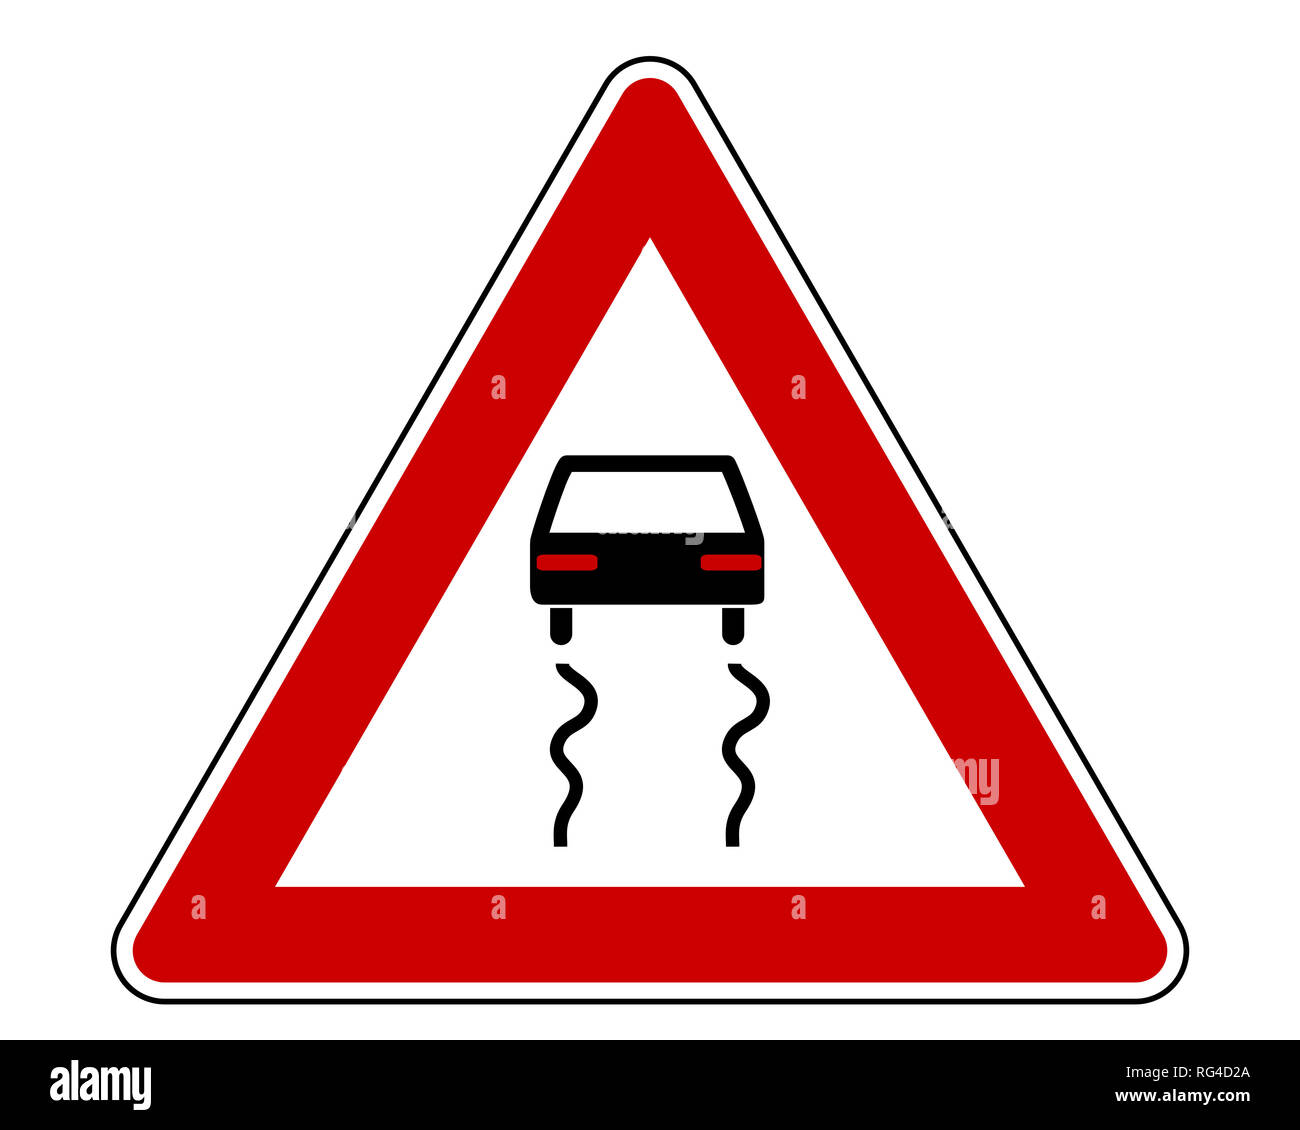 Traffic sign with car - Stock Image